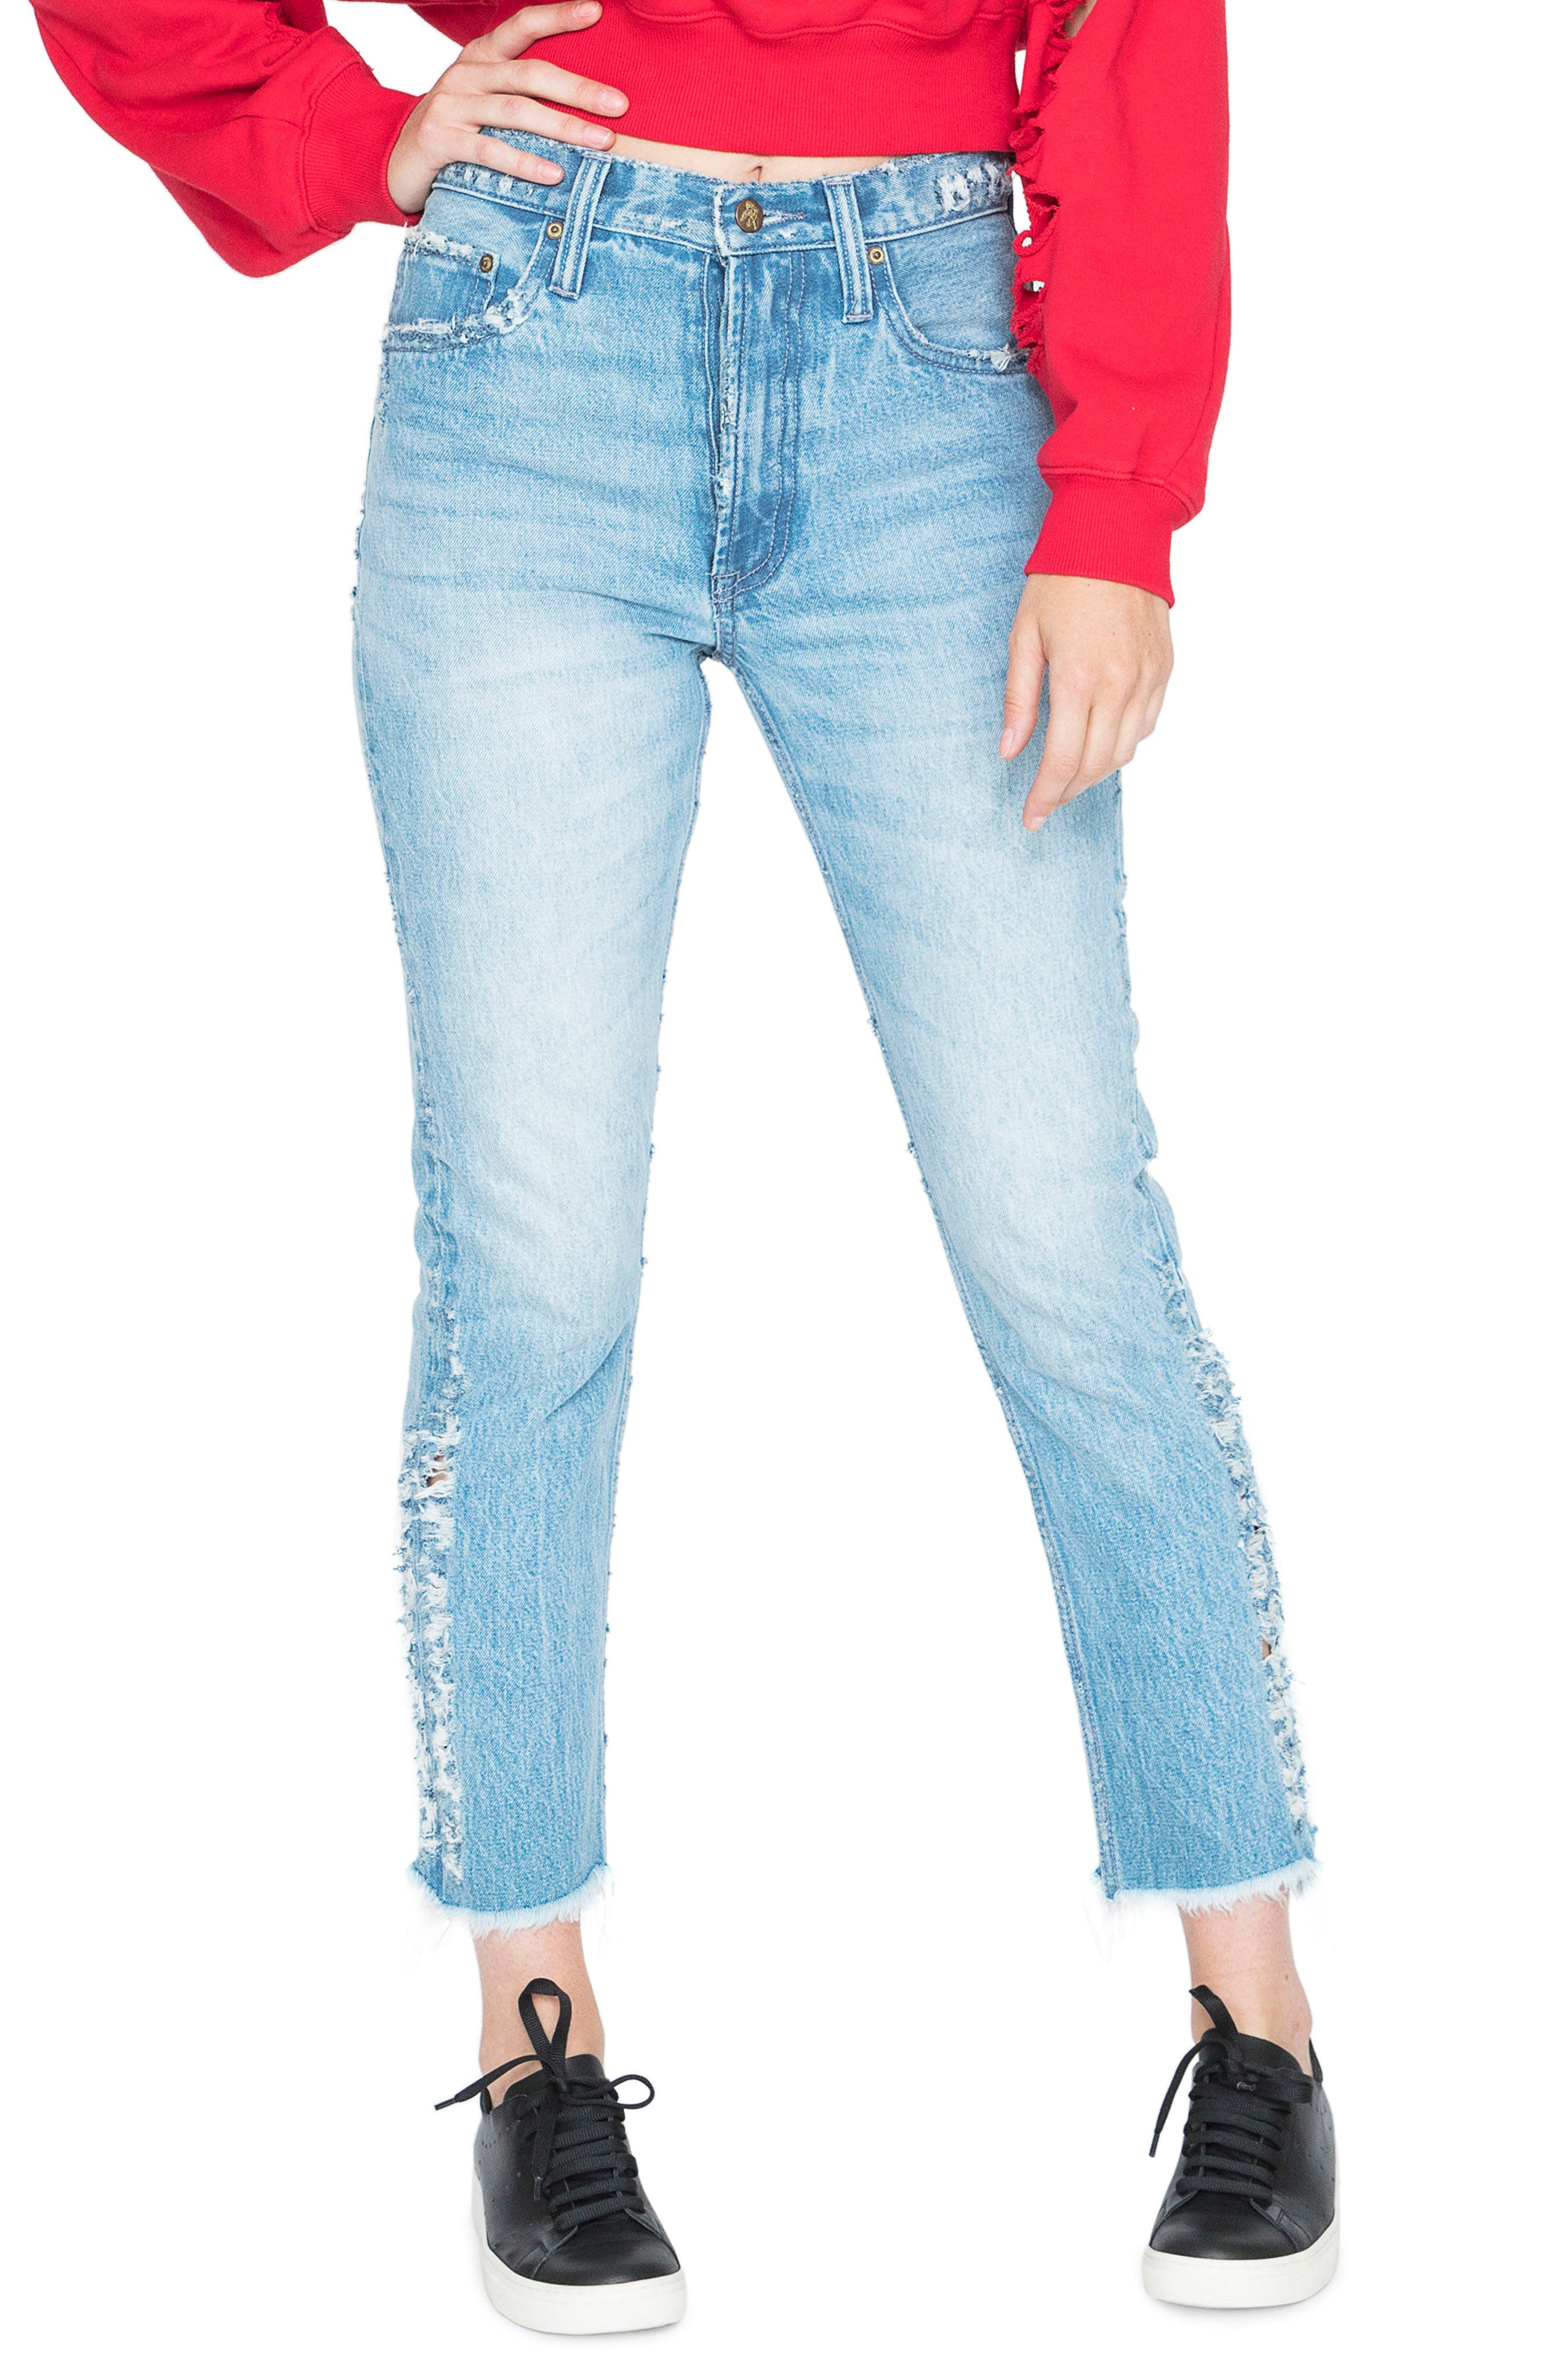 AMX Side Fray High Waist Ankle Jeans,                         Main,                         color, Light Stone